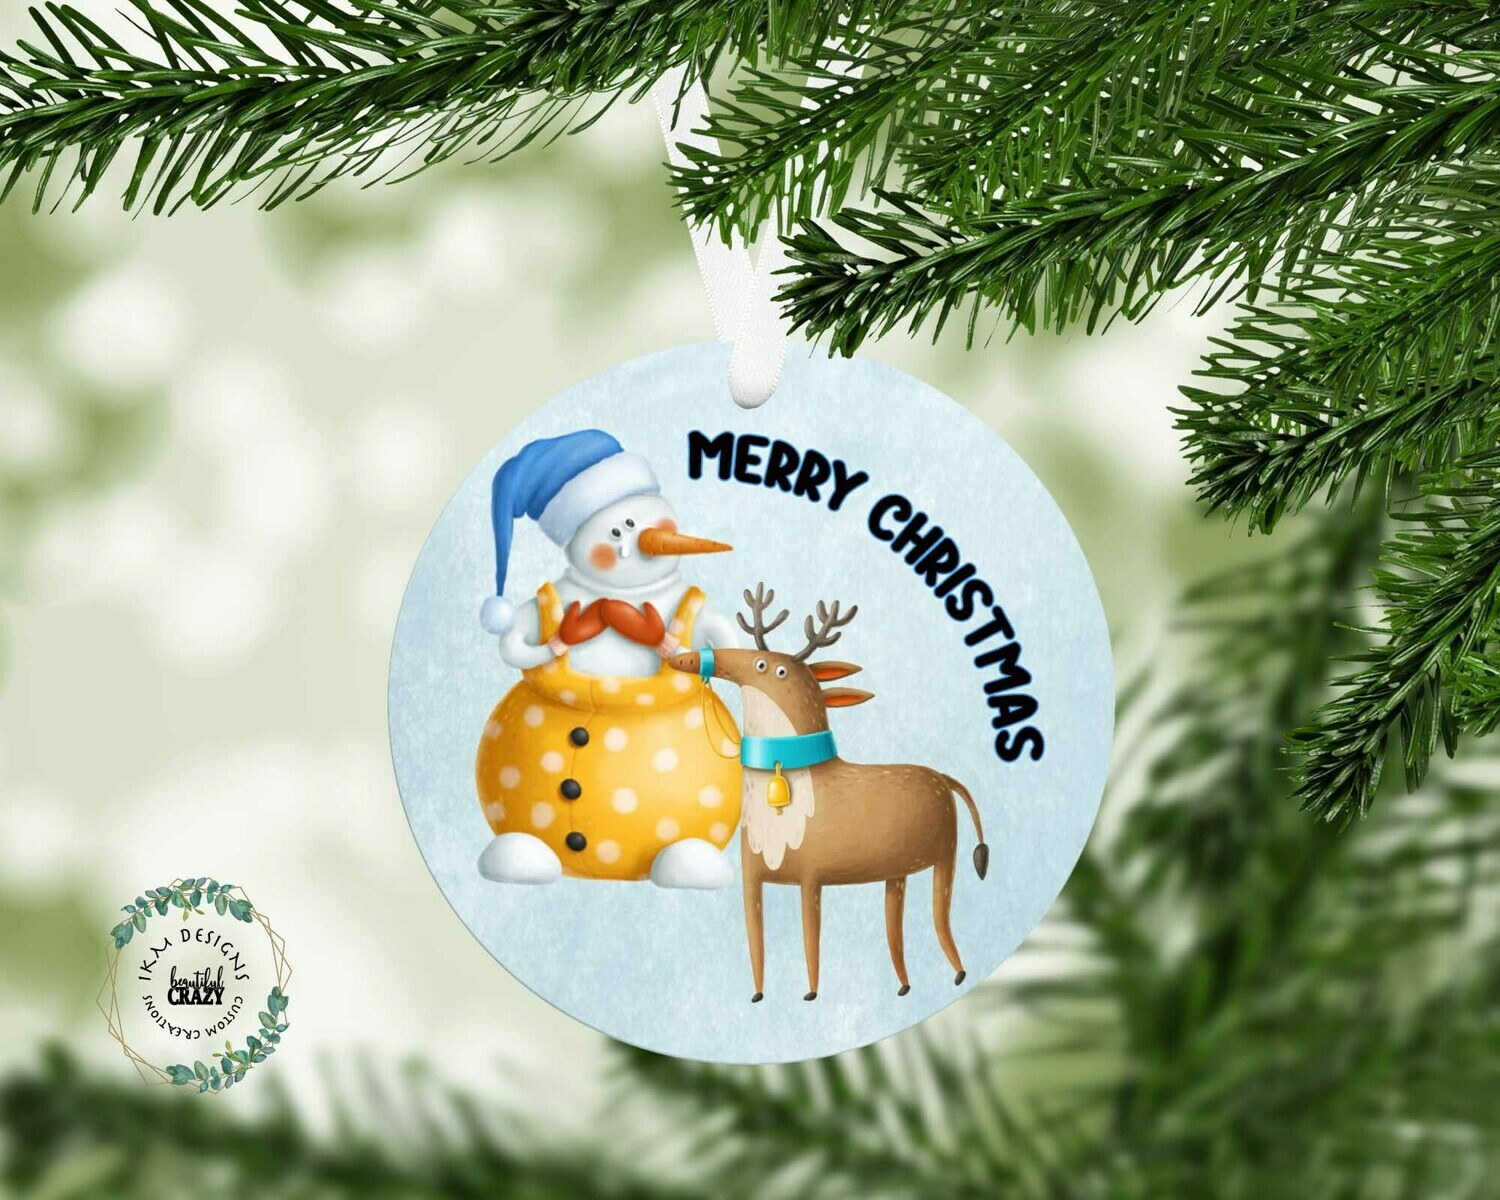 Christmas Snowman template for round ornament blanks